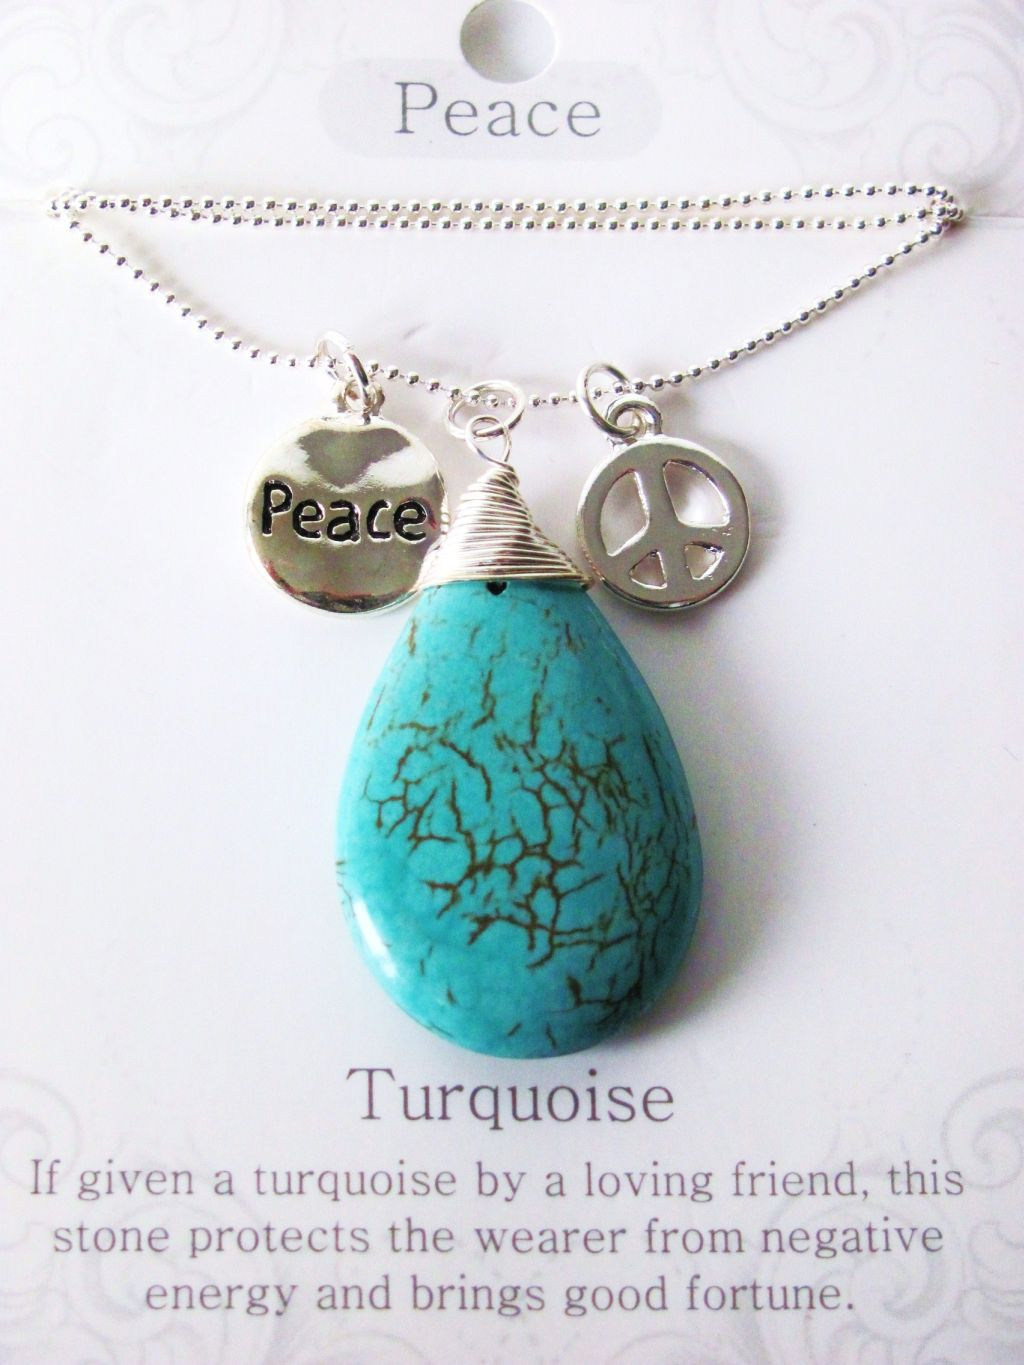 Peace Stone Genuine Turquoise Tear Drop Pendant Necklace w/ Charms